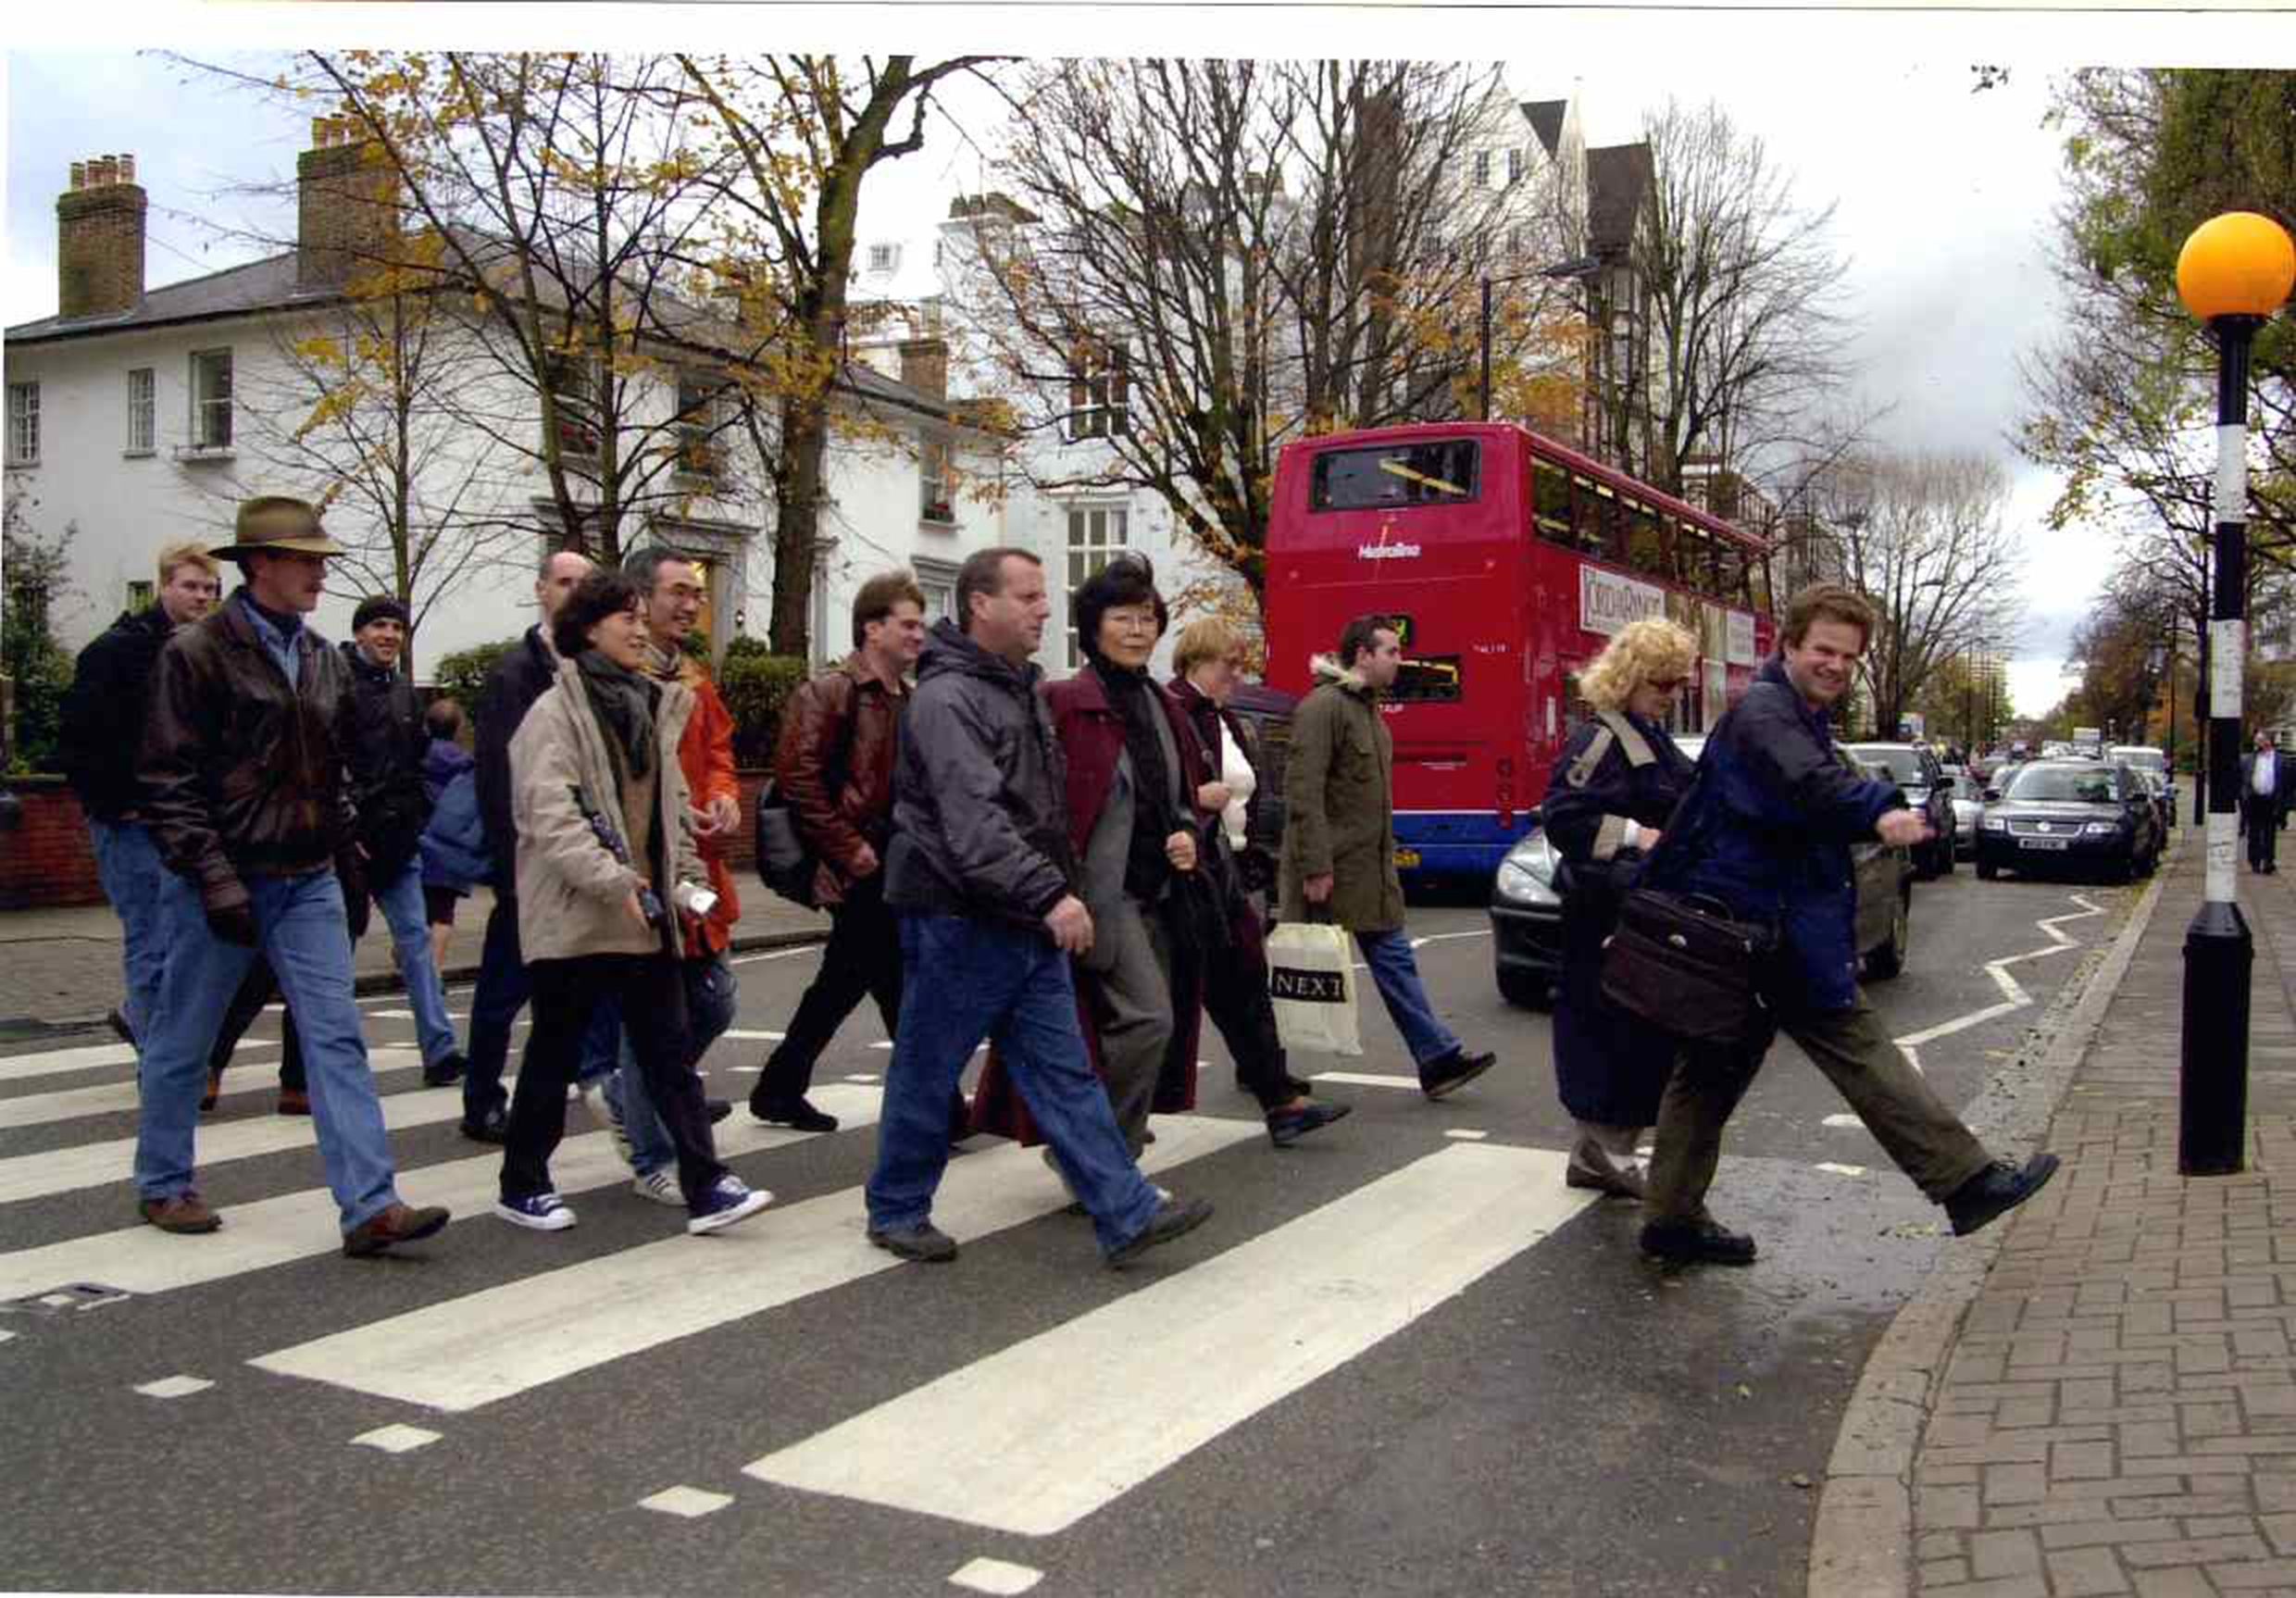 London Beatles walks and tours on Abbey Road